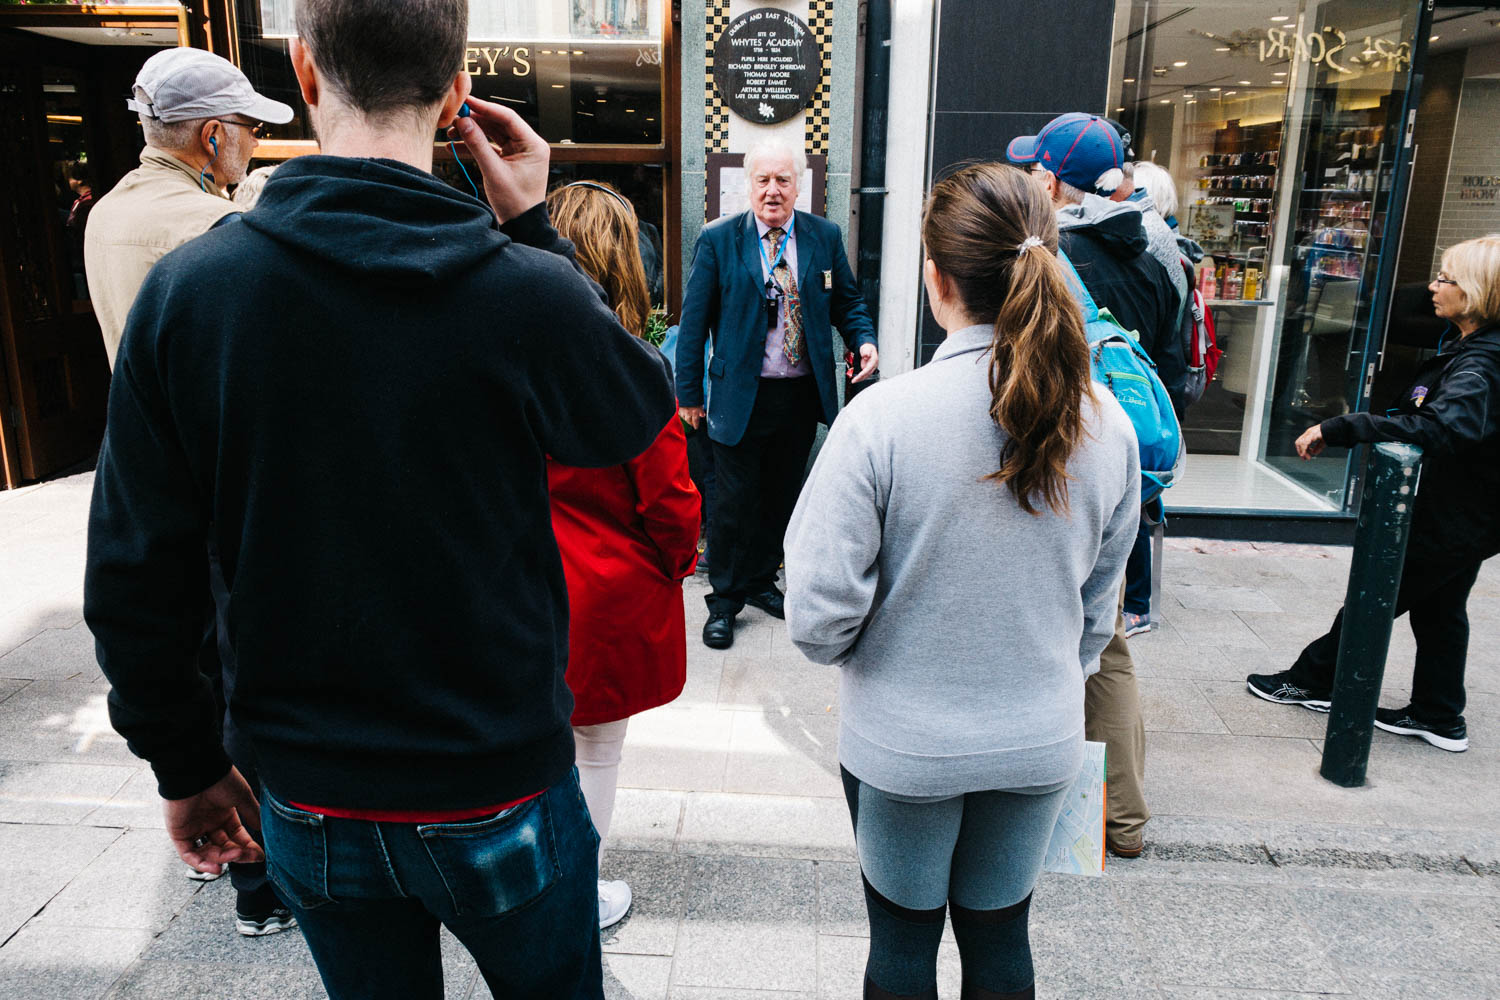 Tour Guide outside Bewleys in Dublin - Street Photograpy on an i